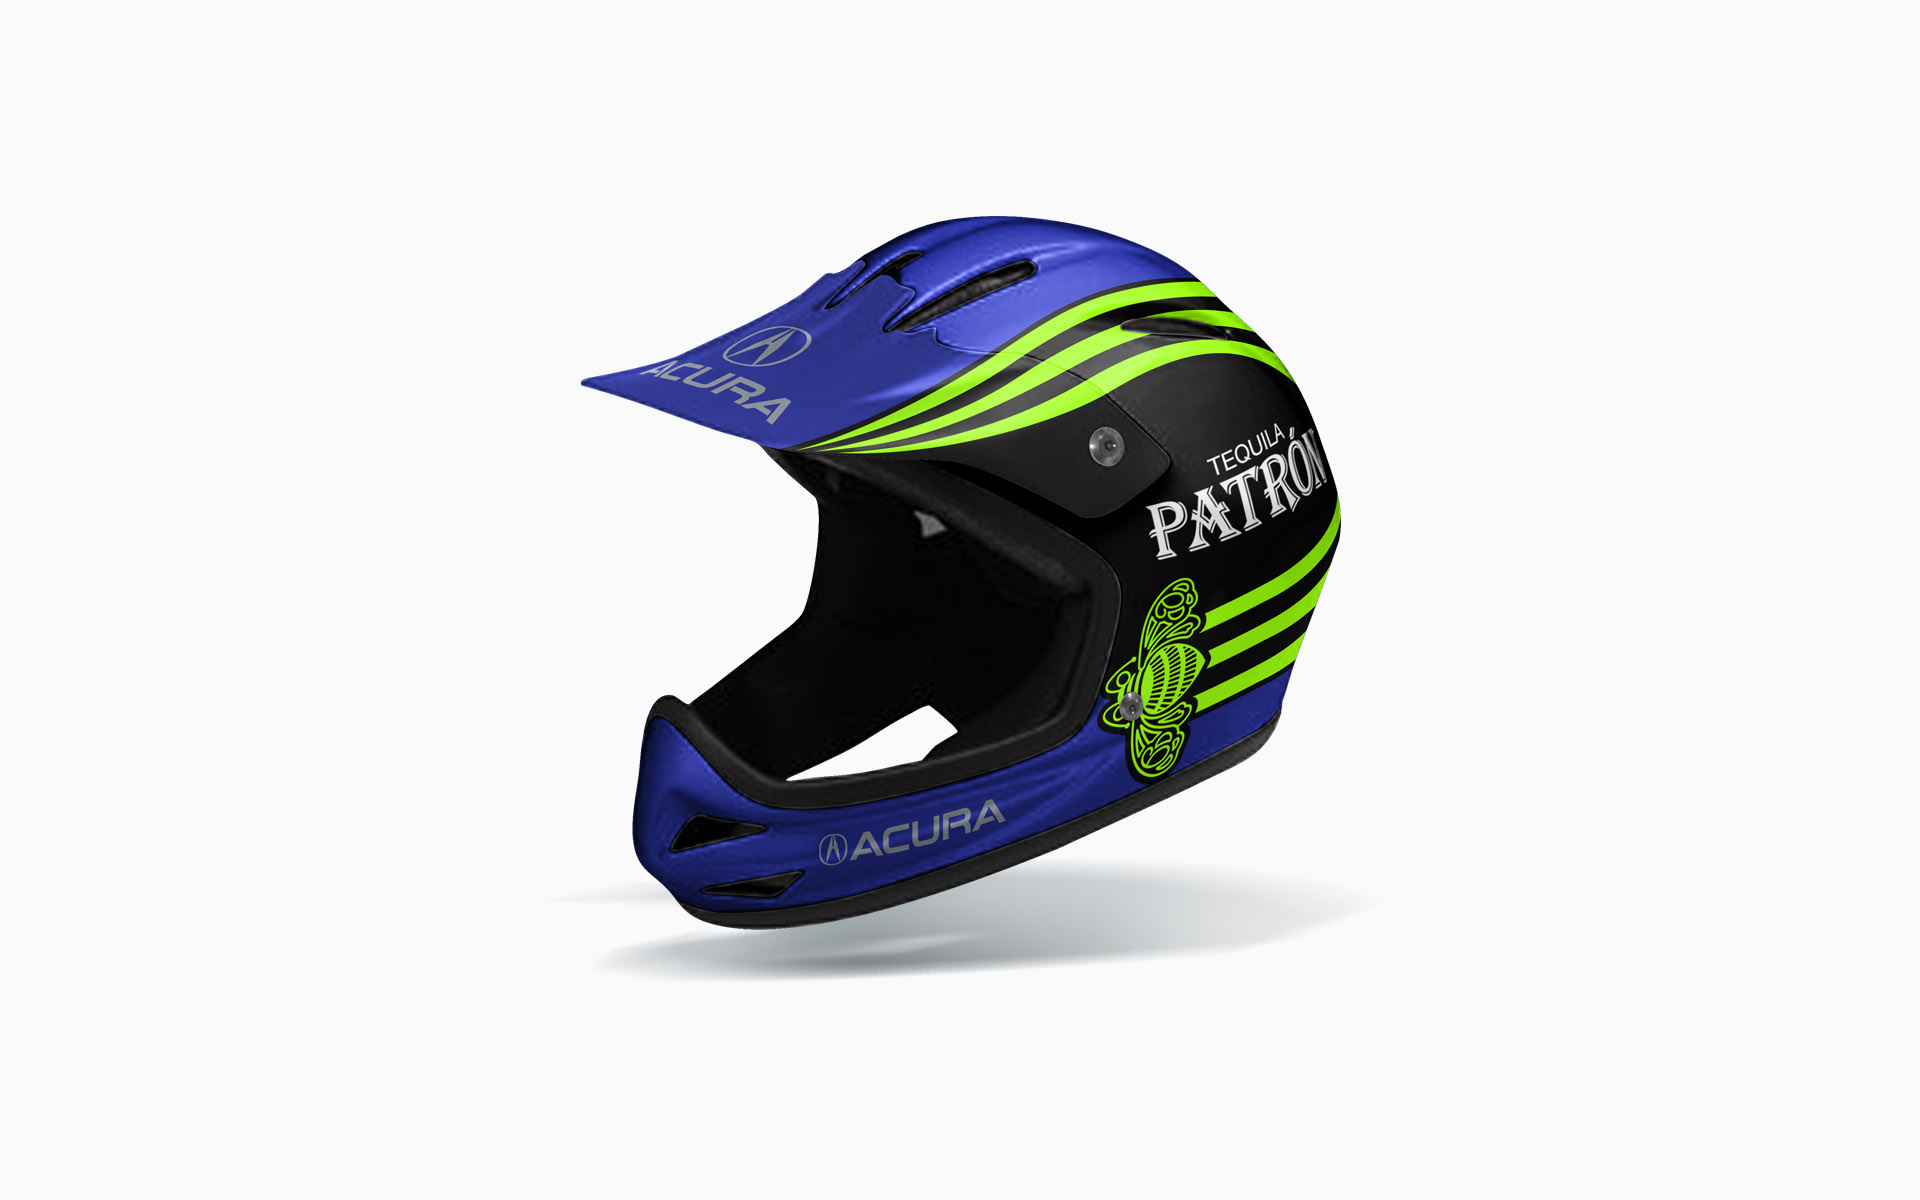 2008 Pátron Highcroft Racing Crew Helmet Livery Visualization